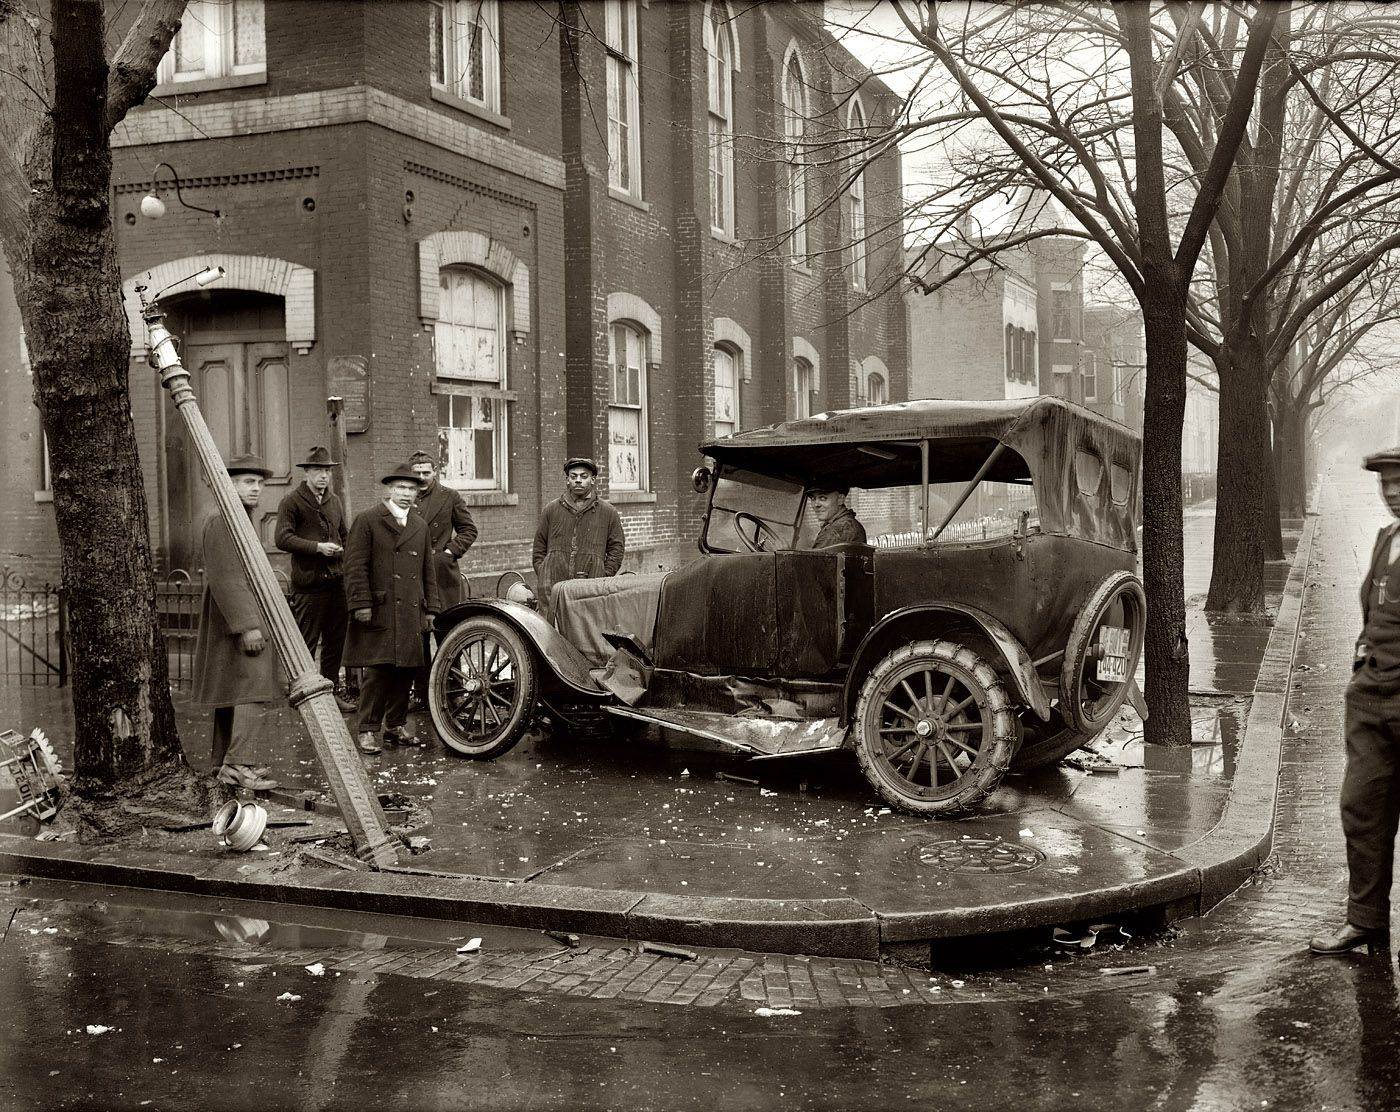 Another view of that 1921 car wreck at the intersection of 10th and ...